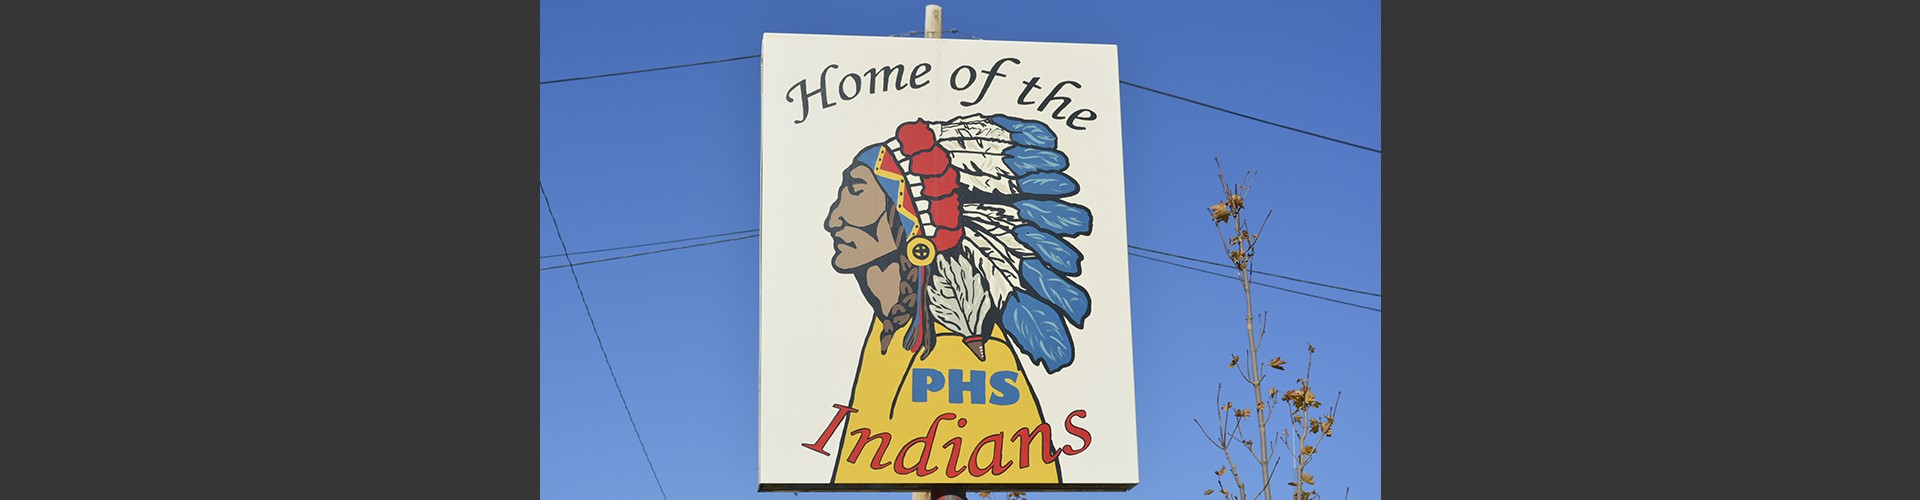 pocatello high school sign 'Home of the PHS indians'